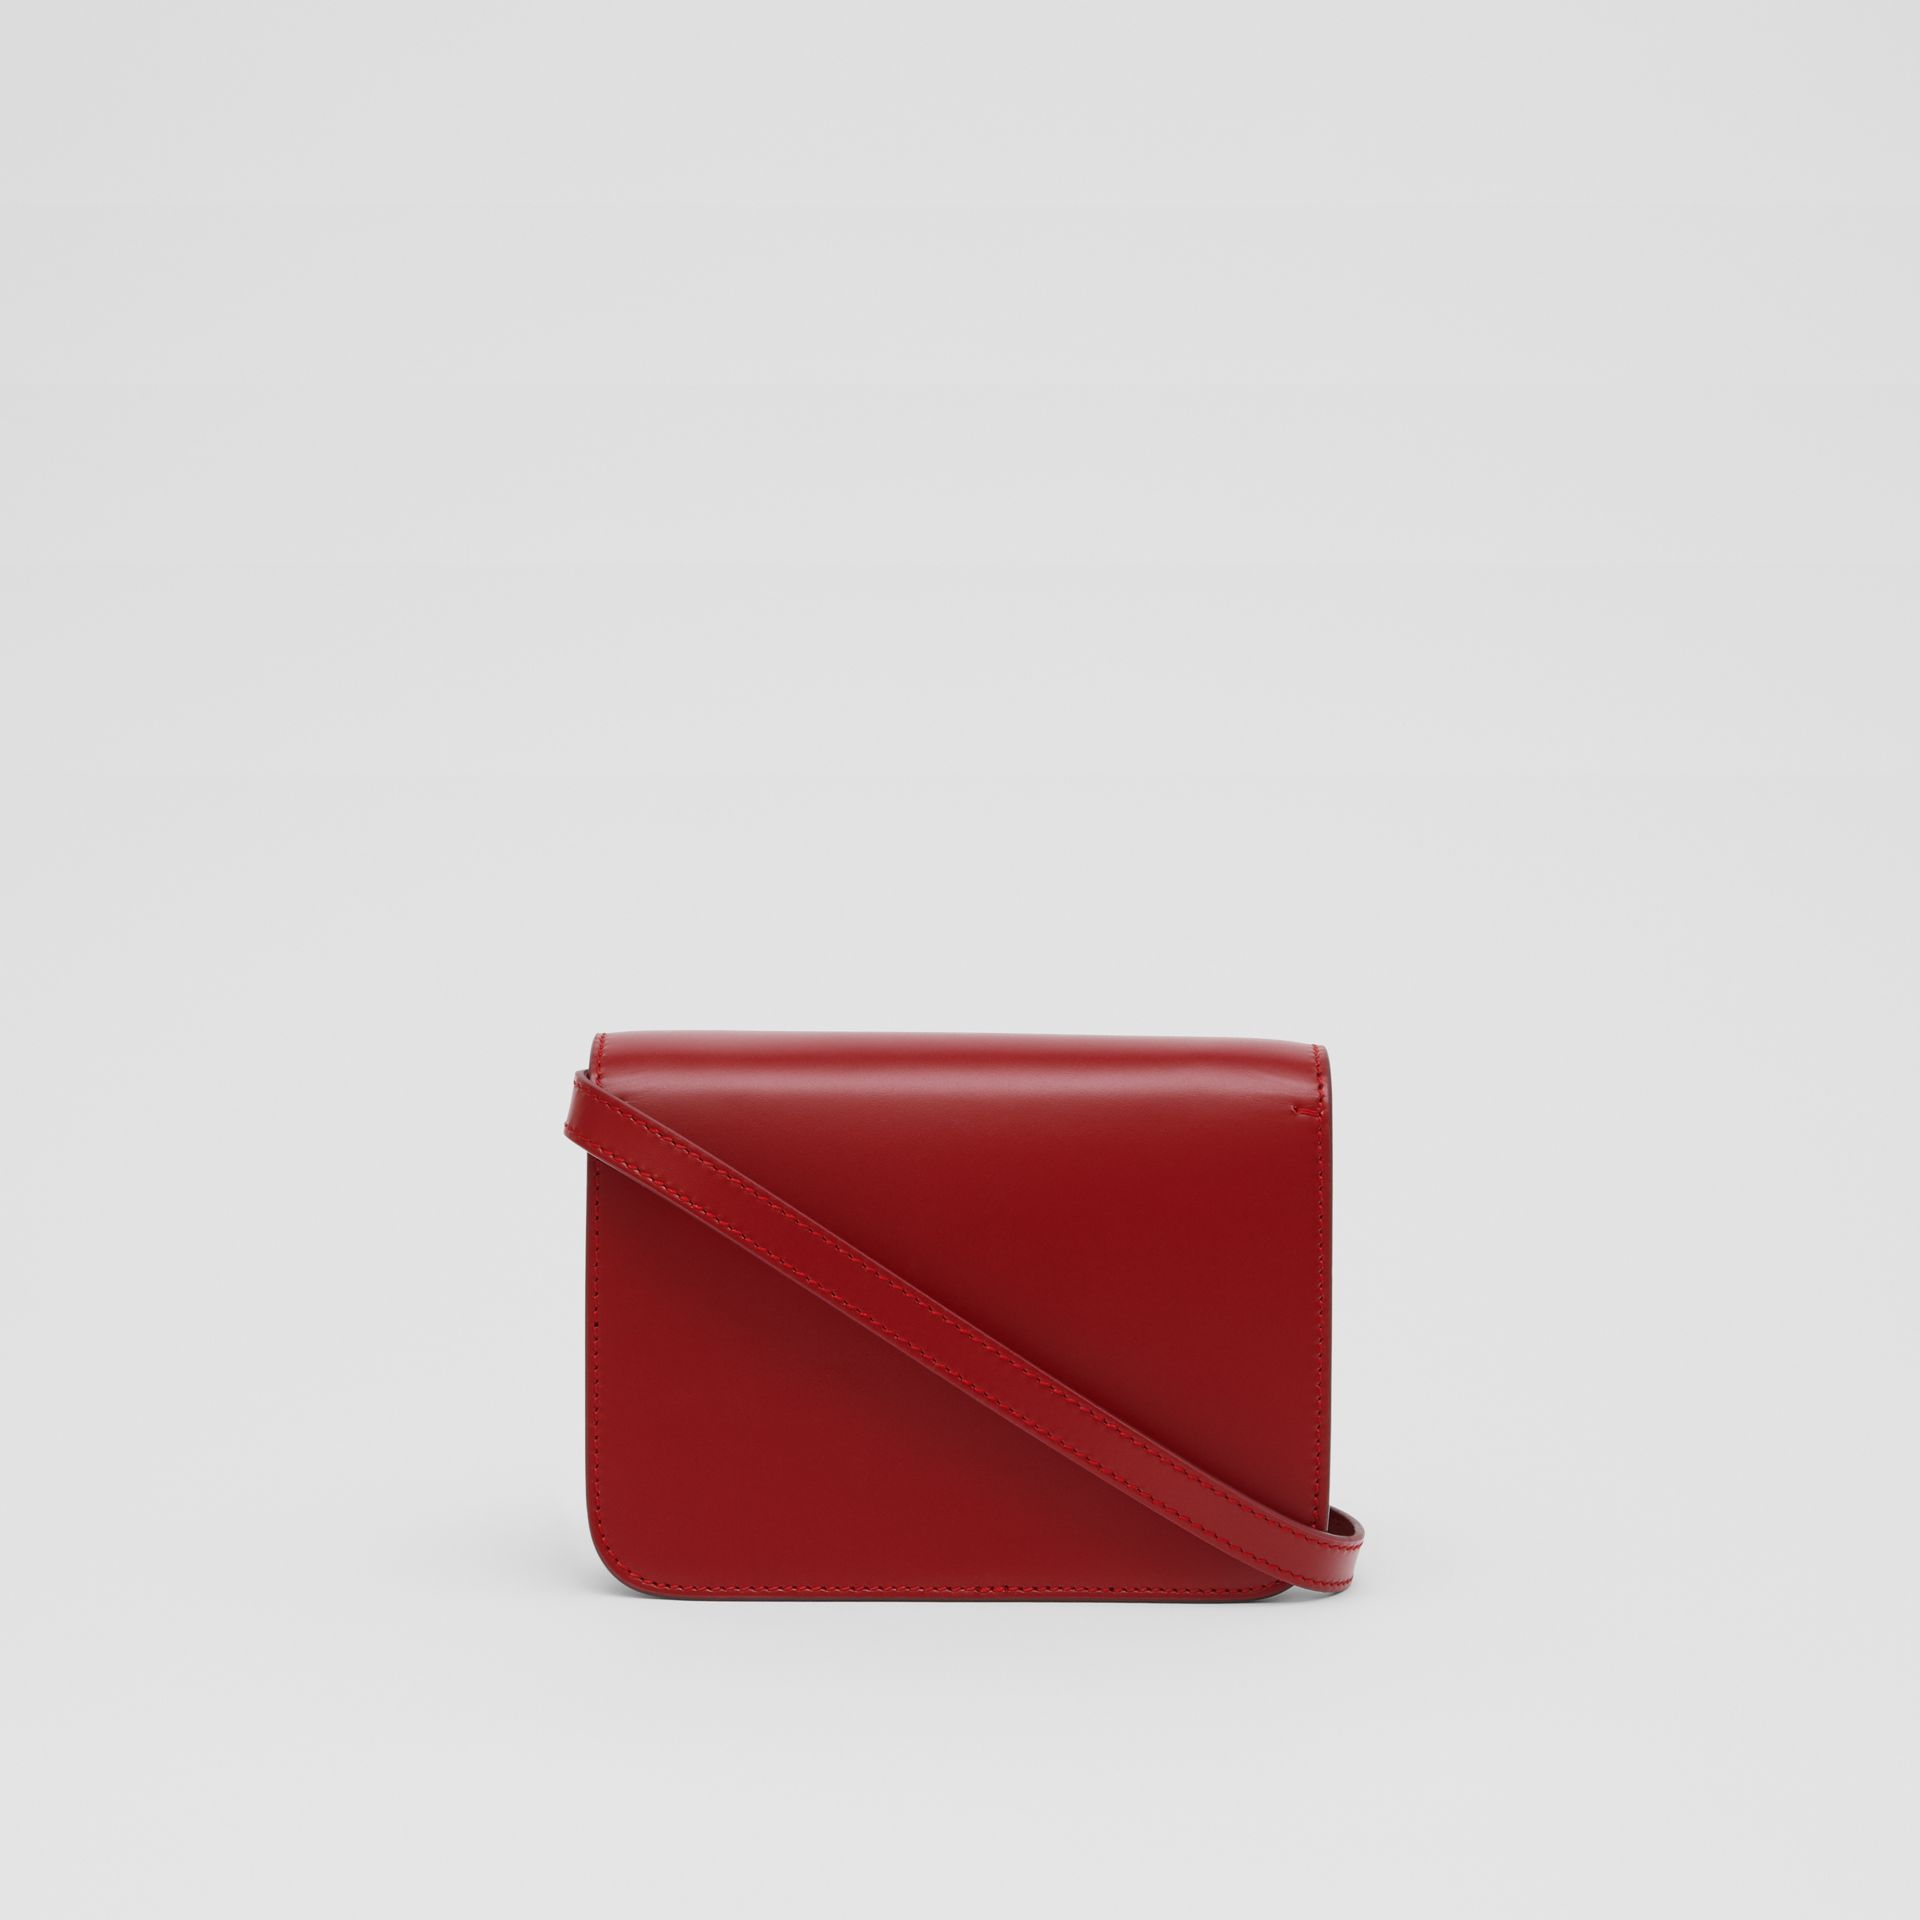 Mini Leather TB Bag in Dark Carmine - Women | Burberry Hong Kong S.A.R. - gallery image 7